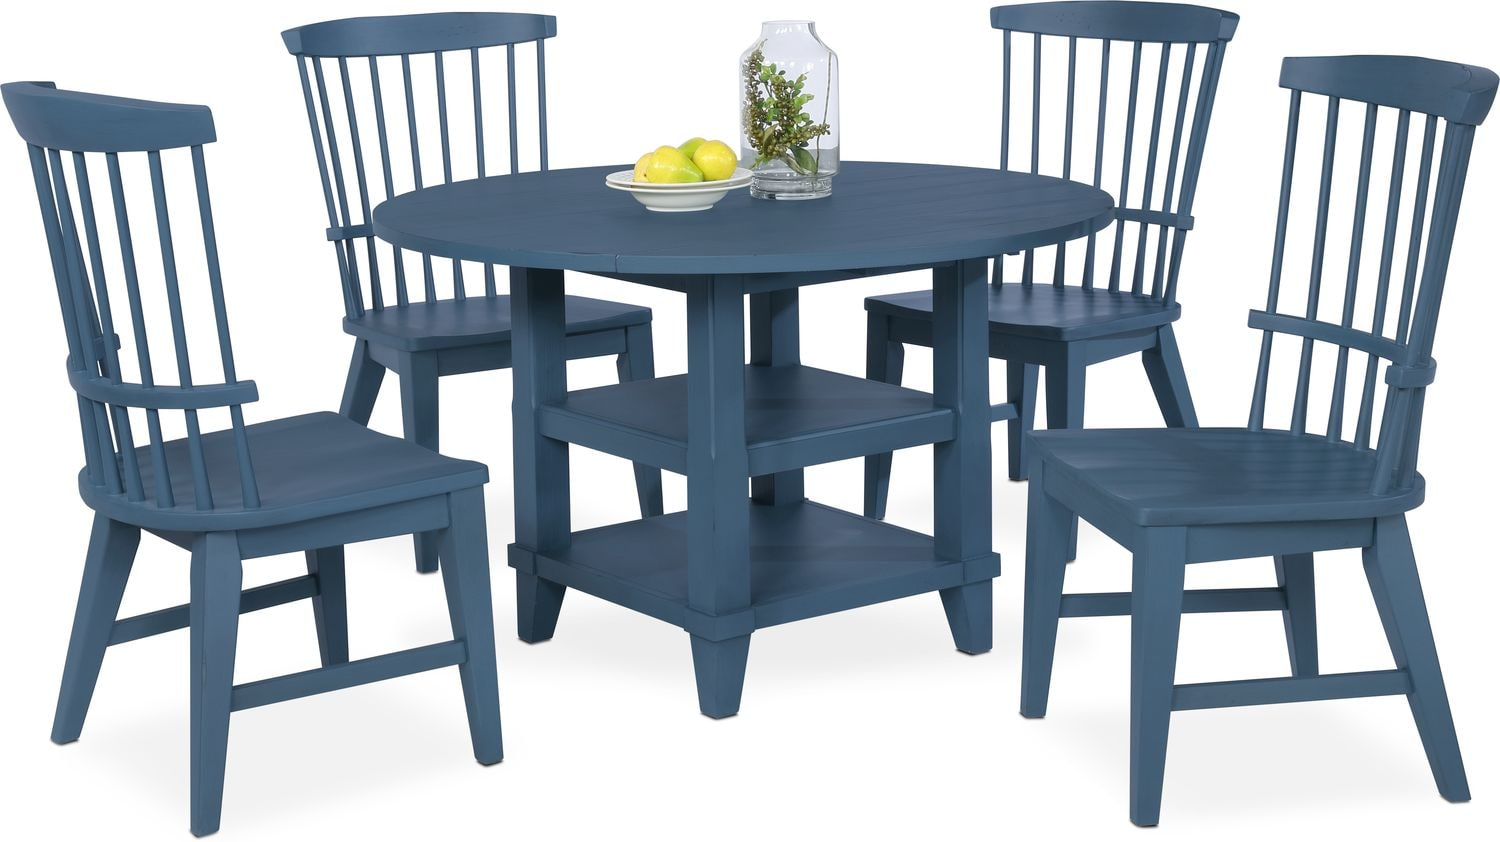 Dining room furniture new haven round dining table and 4 windsor side chairs blue